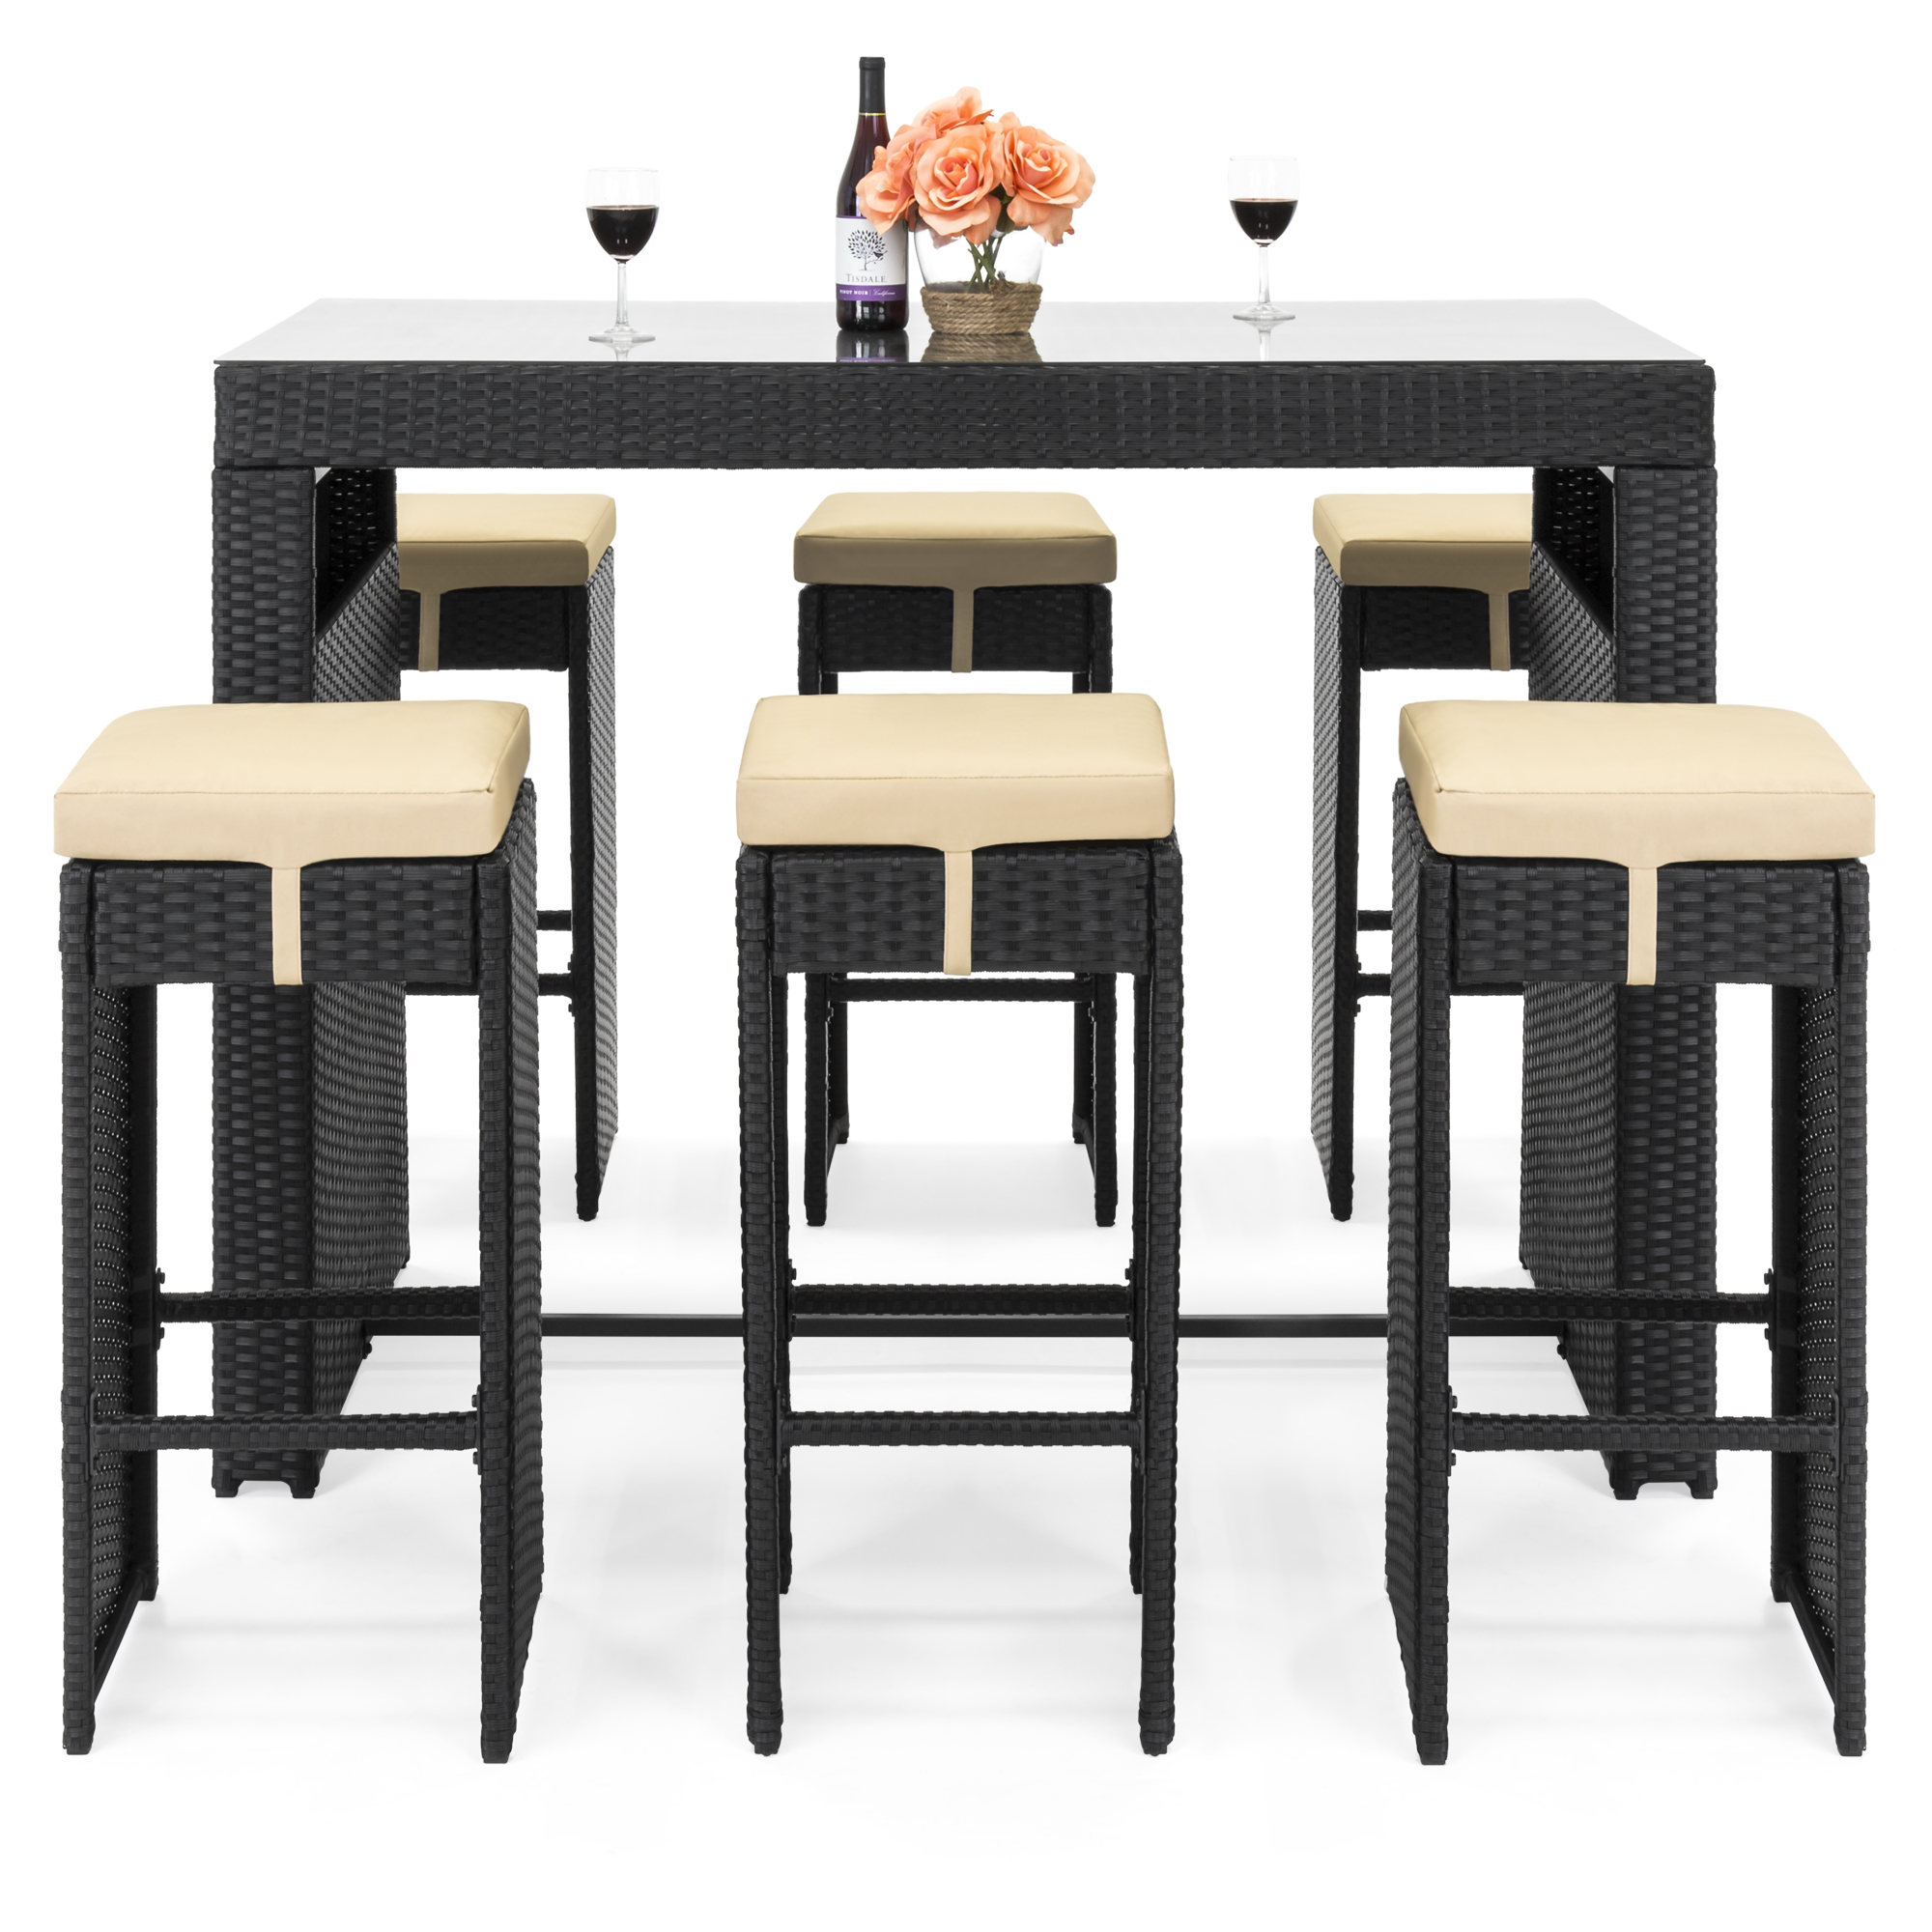 Best Choice Products 7 Piece Outdoor Rattan Wicker Bar Dining Patio Furniture Set W Gl Table Top 6 Stools Black